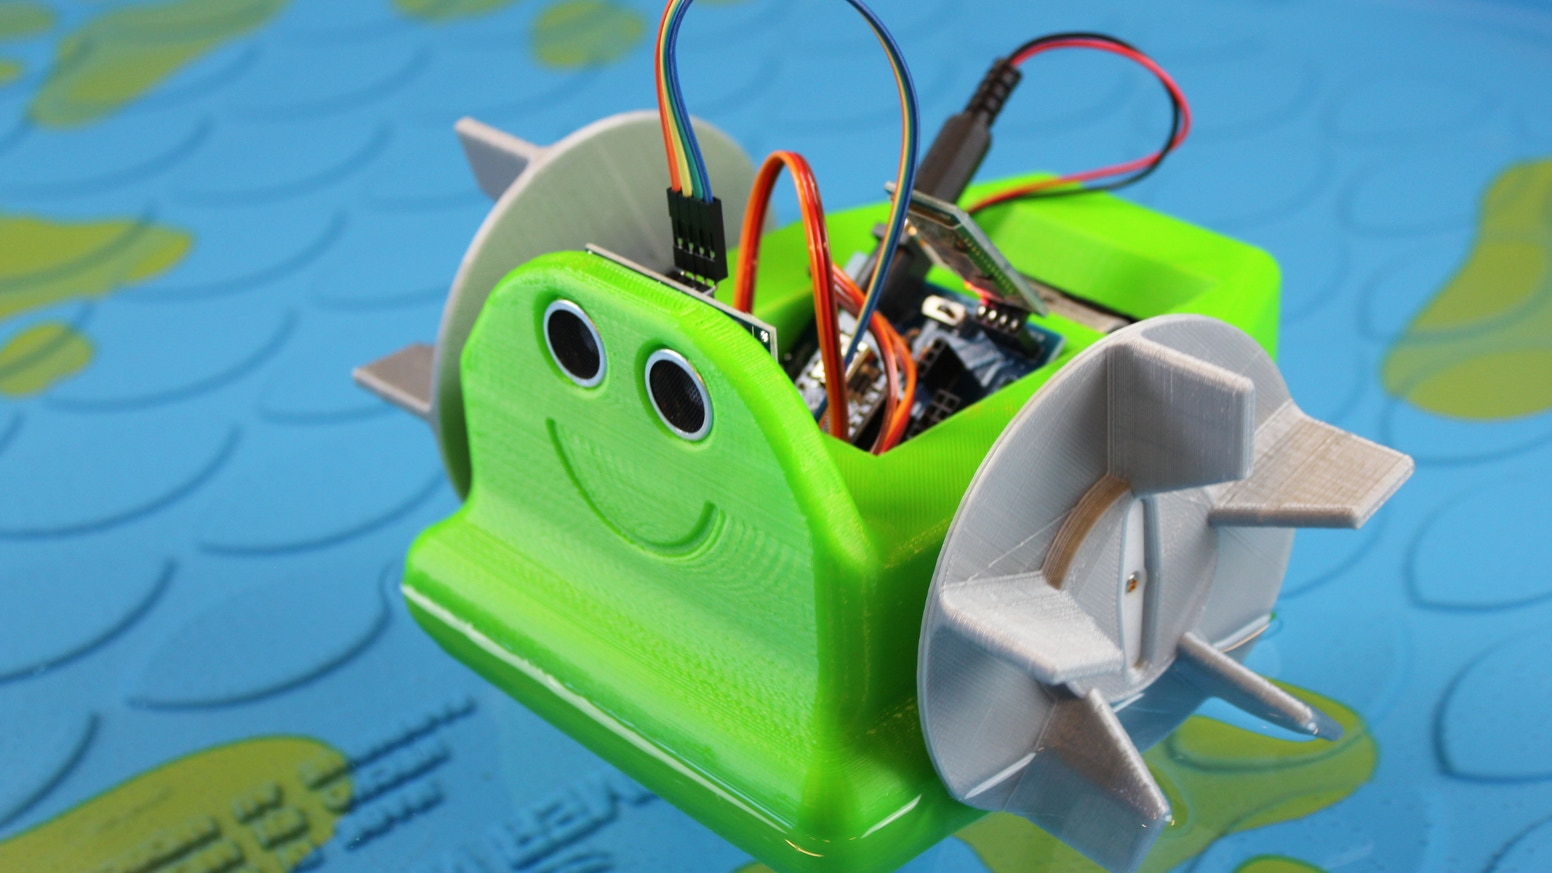 An Arduino robotics kit for your pool, pond, or tub. Build it, control it, reprogram it.